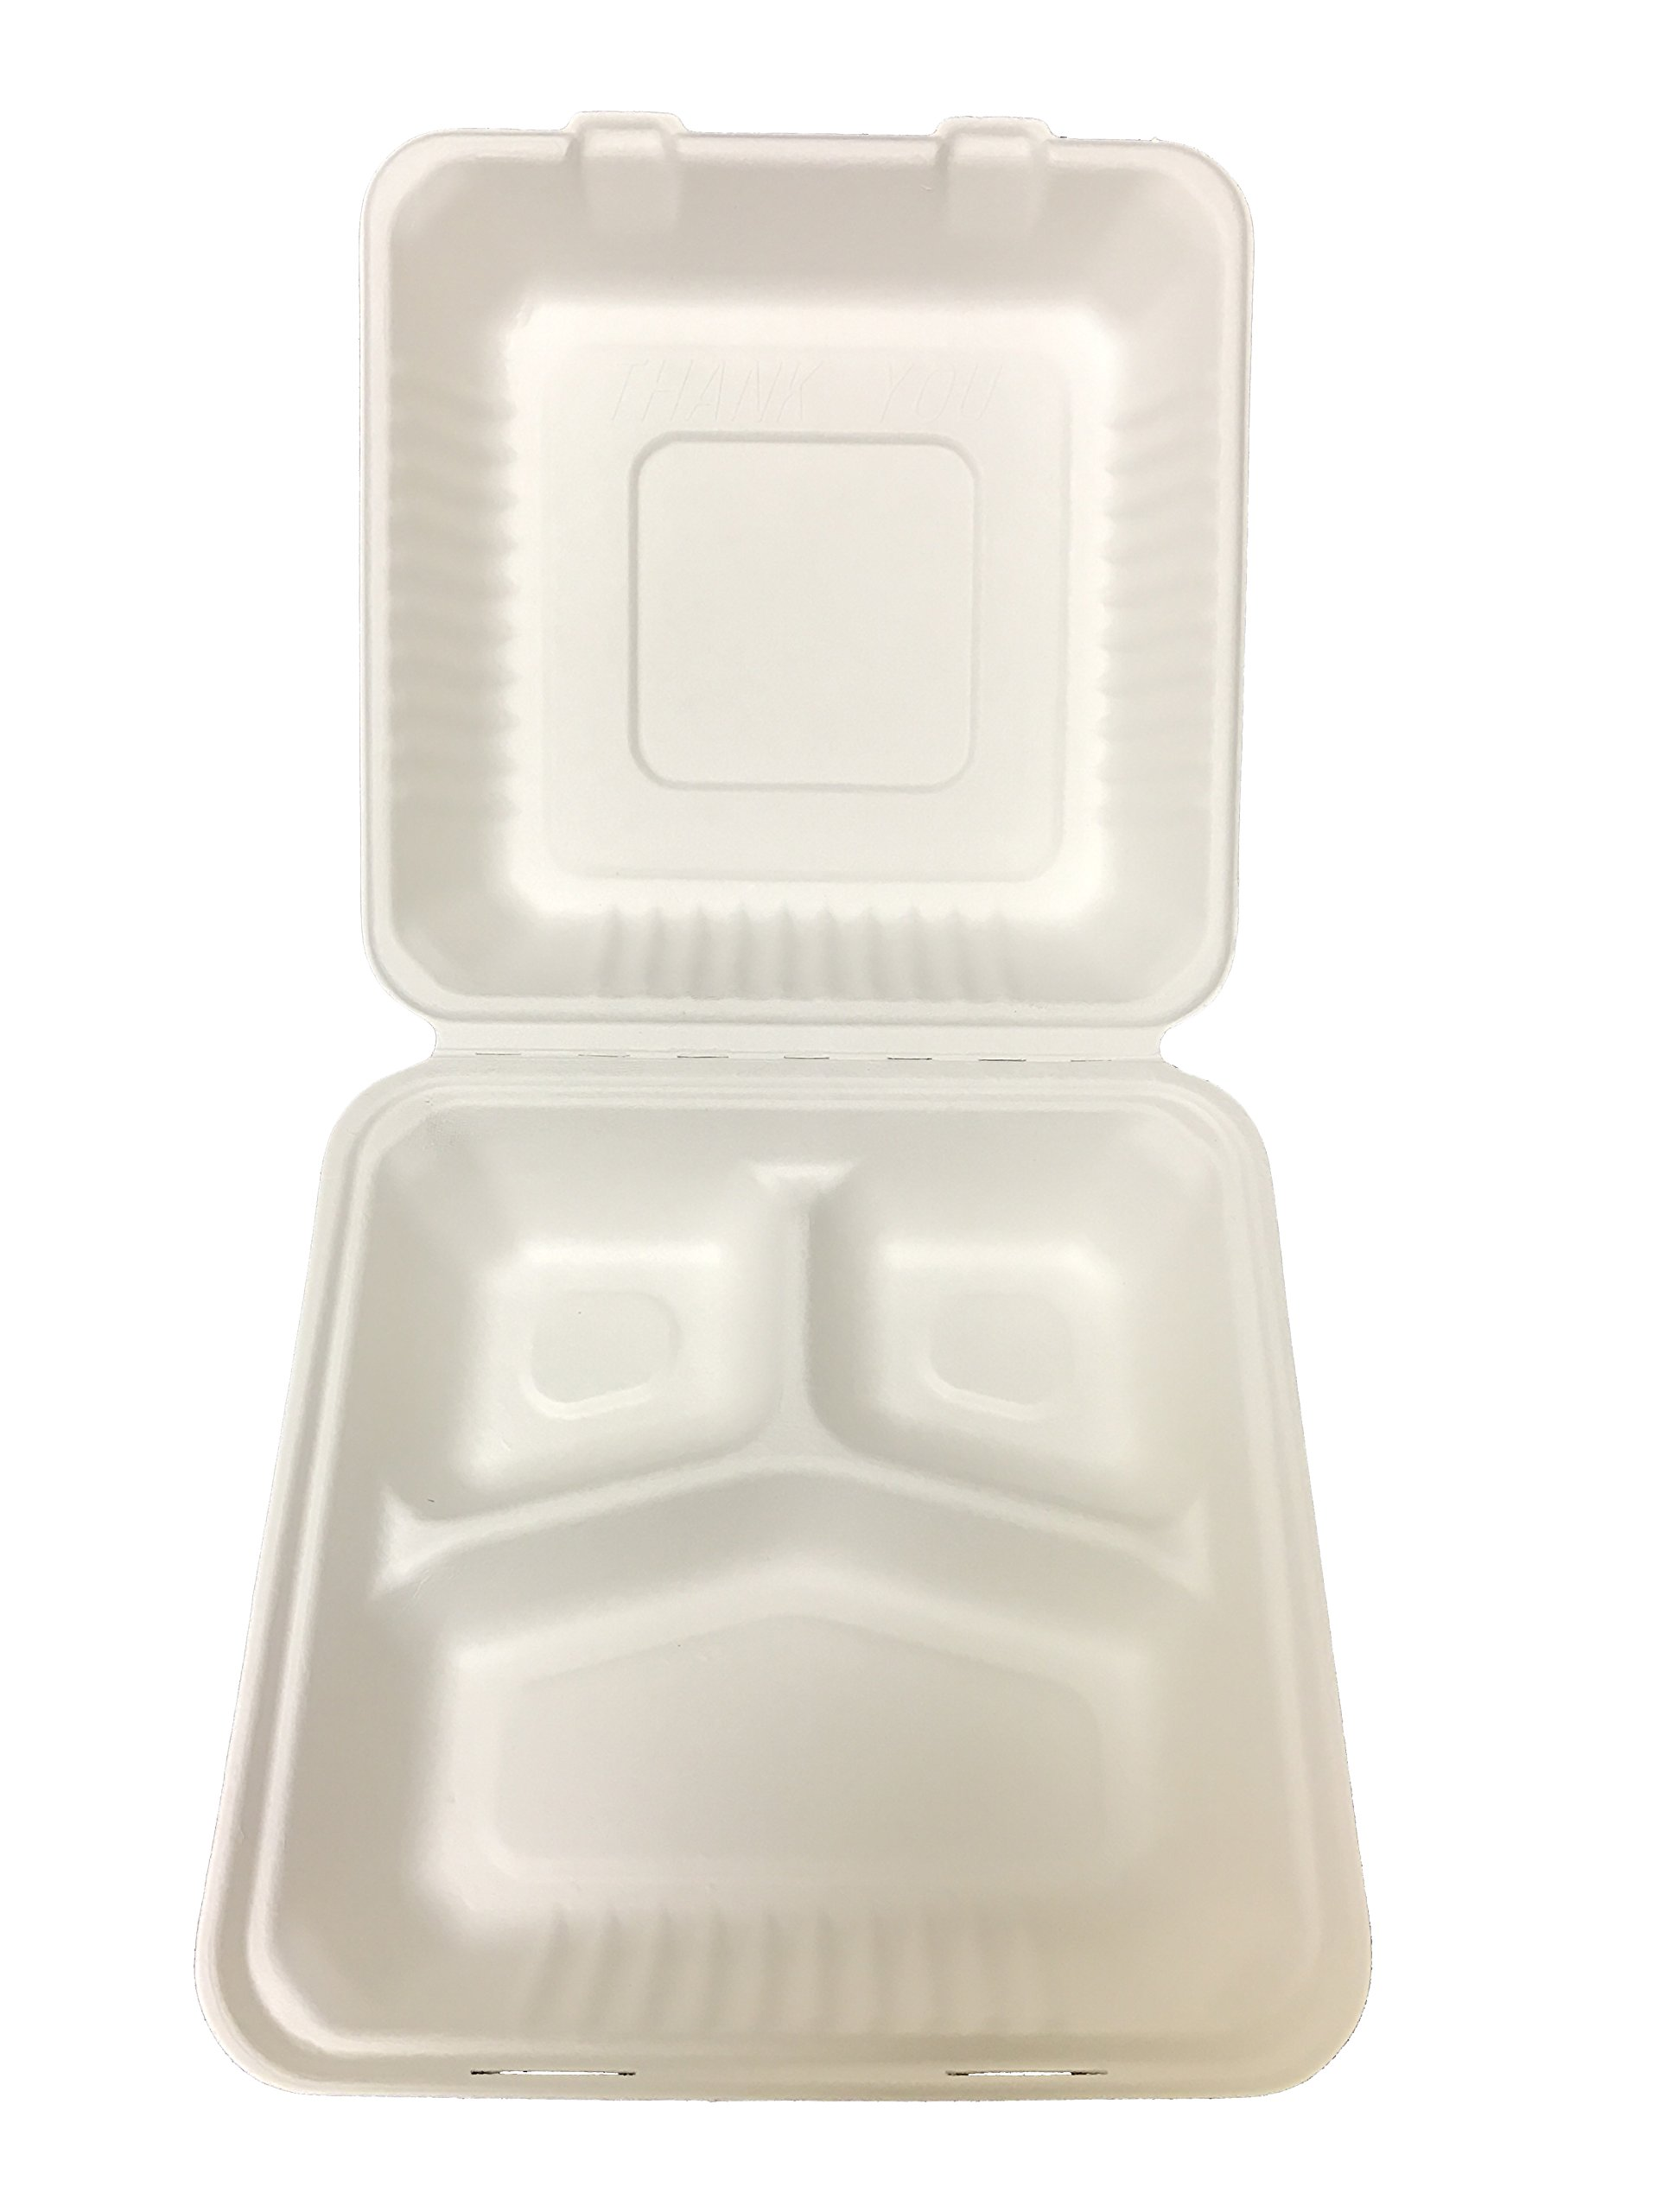 Primeware Bagasse Hinged Lid Container - Large 3-Section 9 x 3.19'' - 200/Cs (2 x 100), Not Applicable